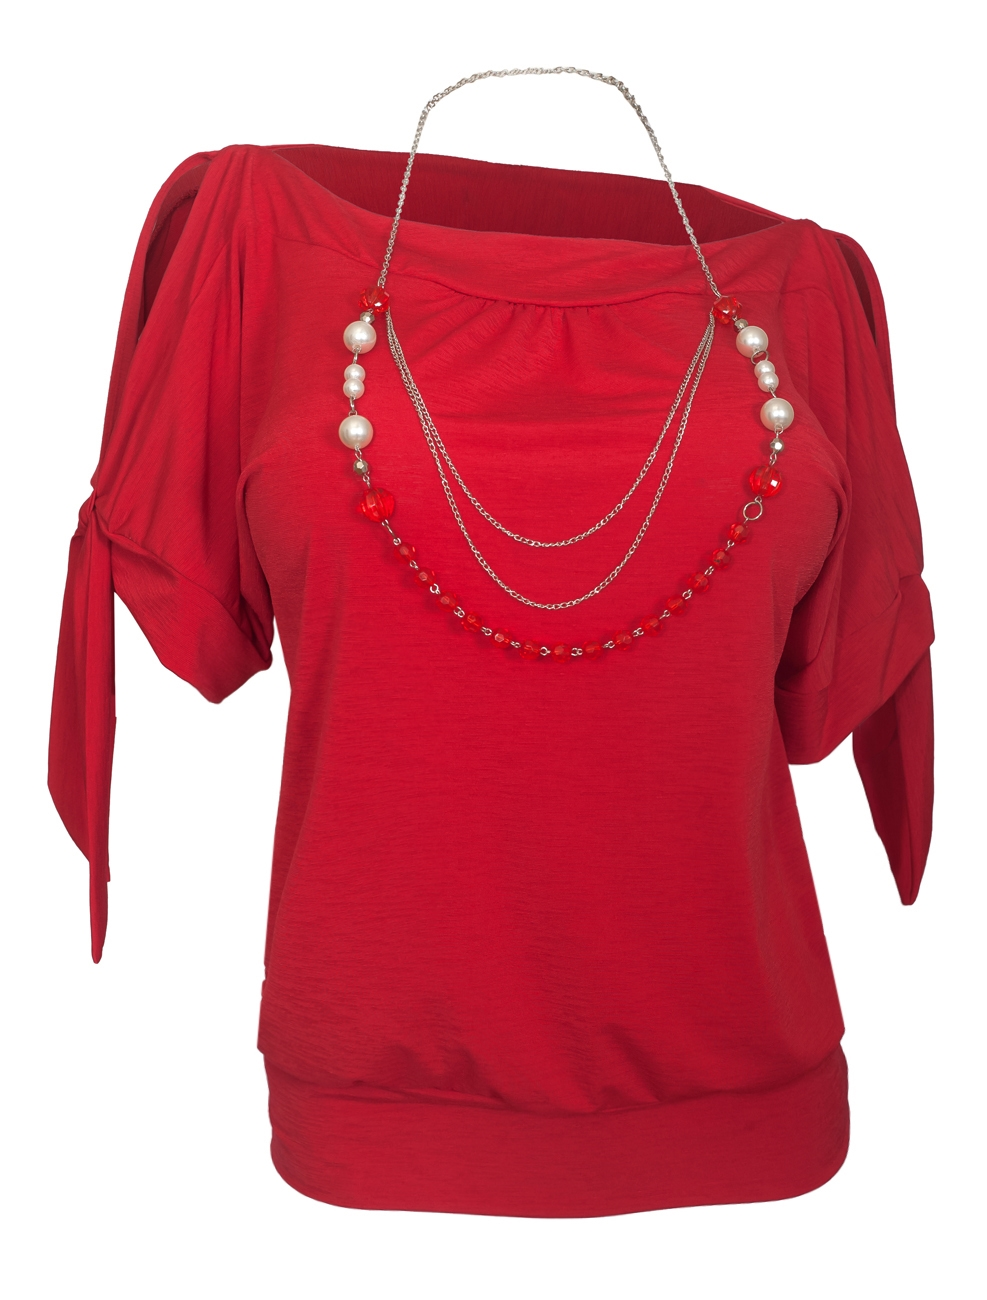 Women's Cold Shoulder Top with Necklace Detail Red